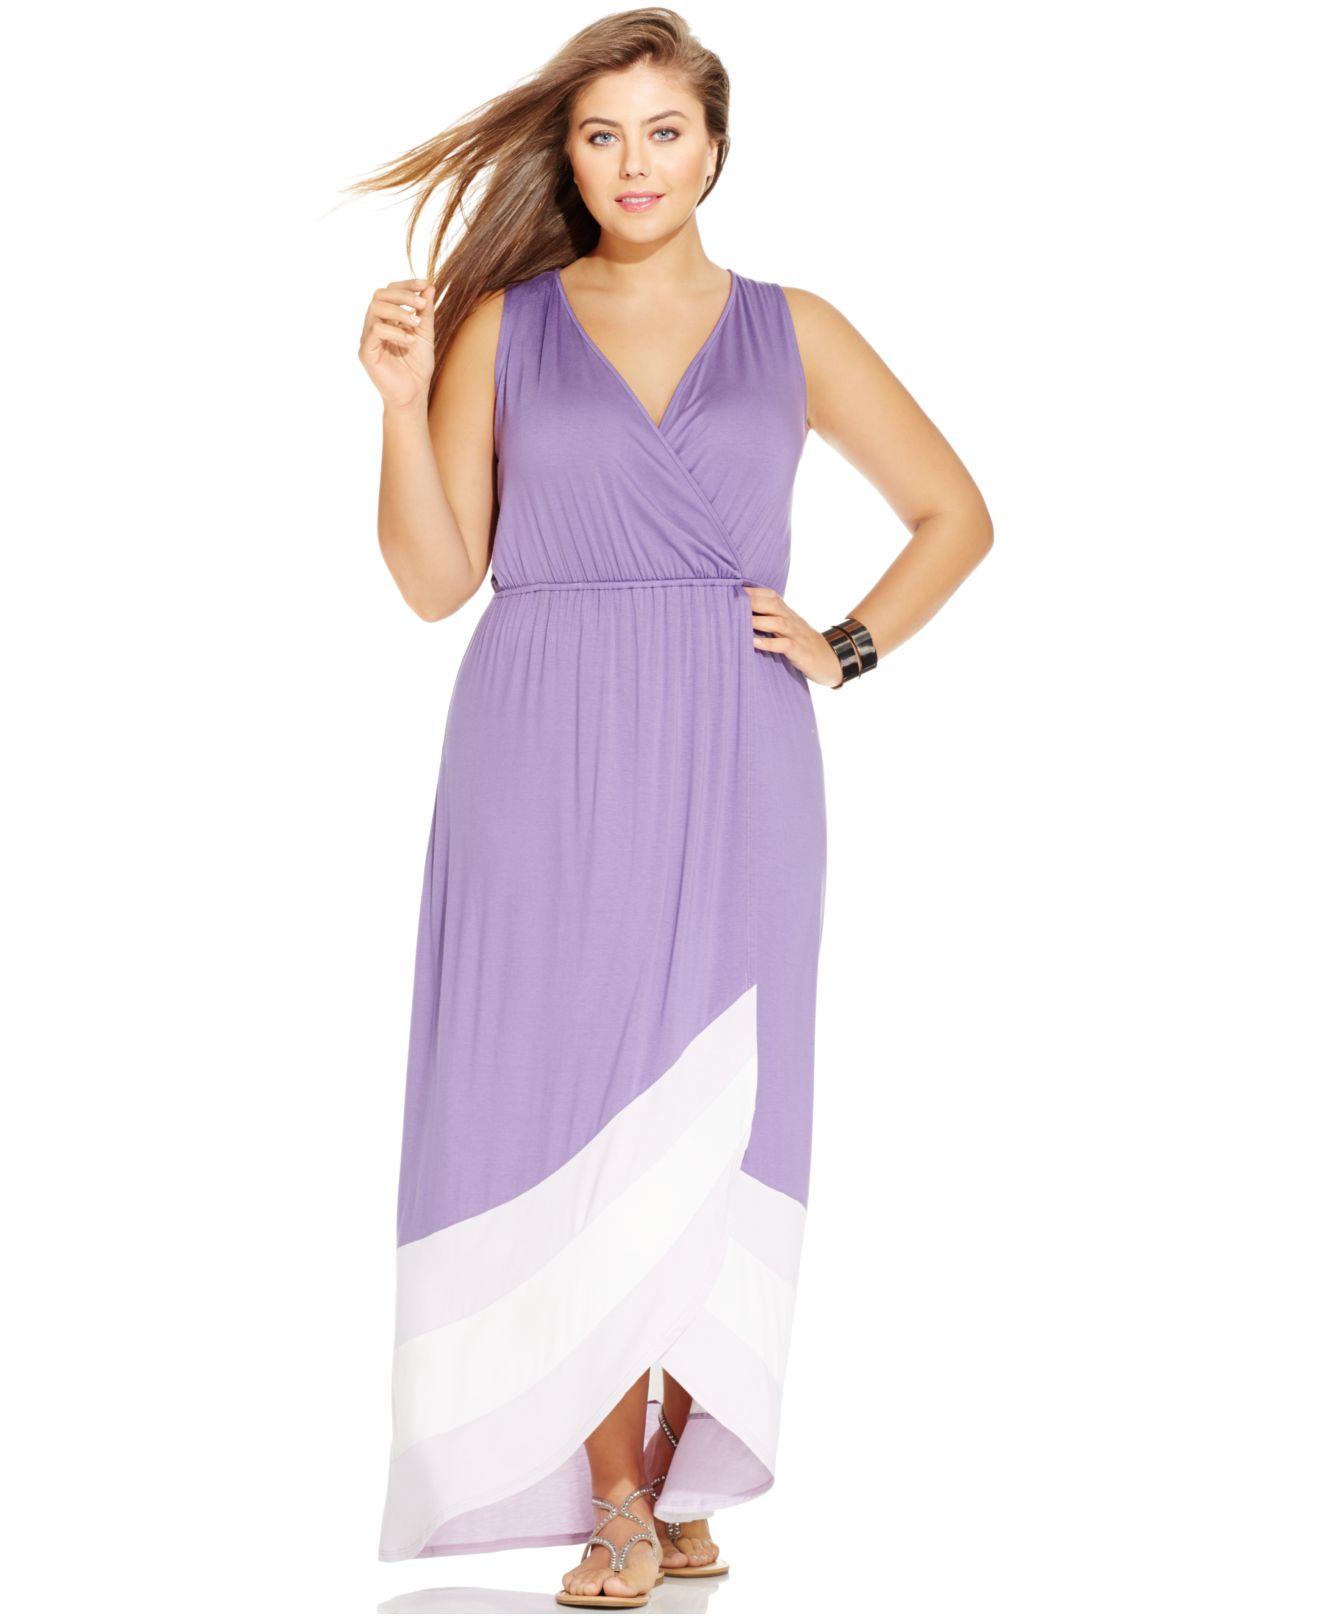 Soprano Plus Size Sleeveless Colorblocked Maxi Dress in Purple | Lyst